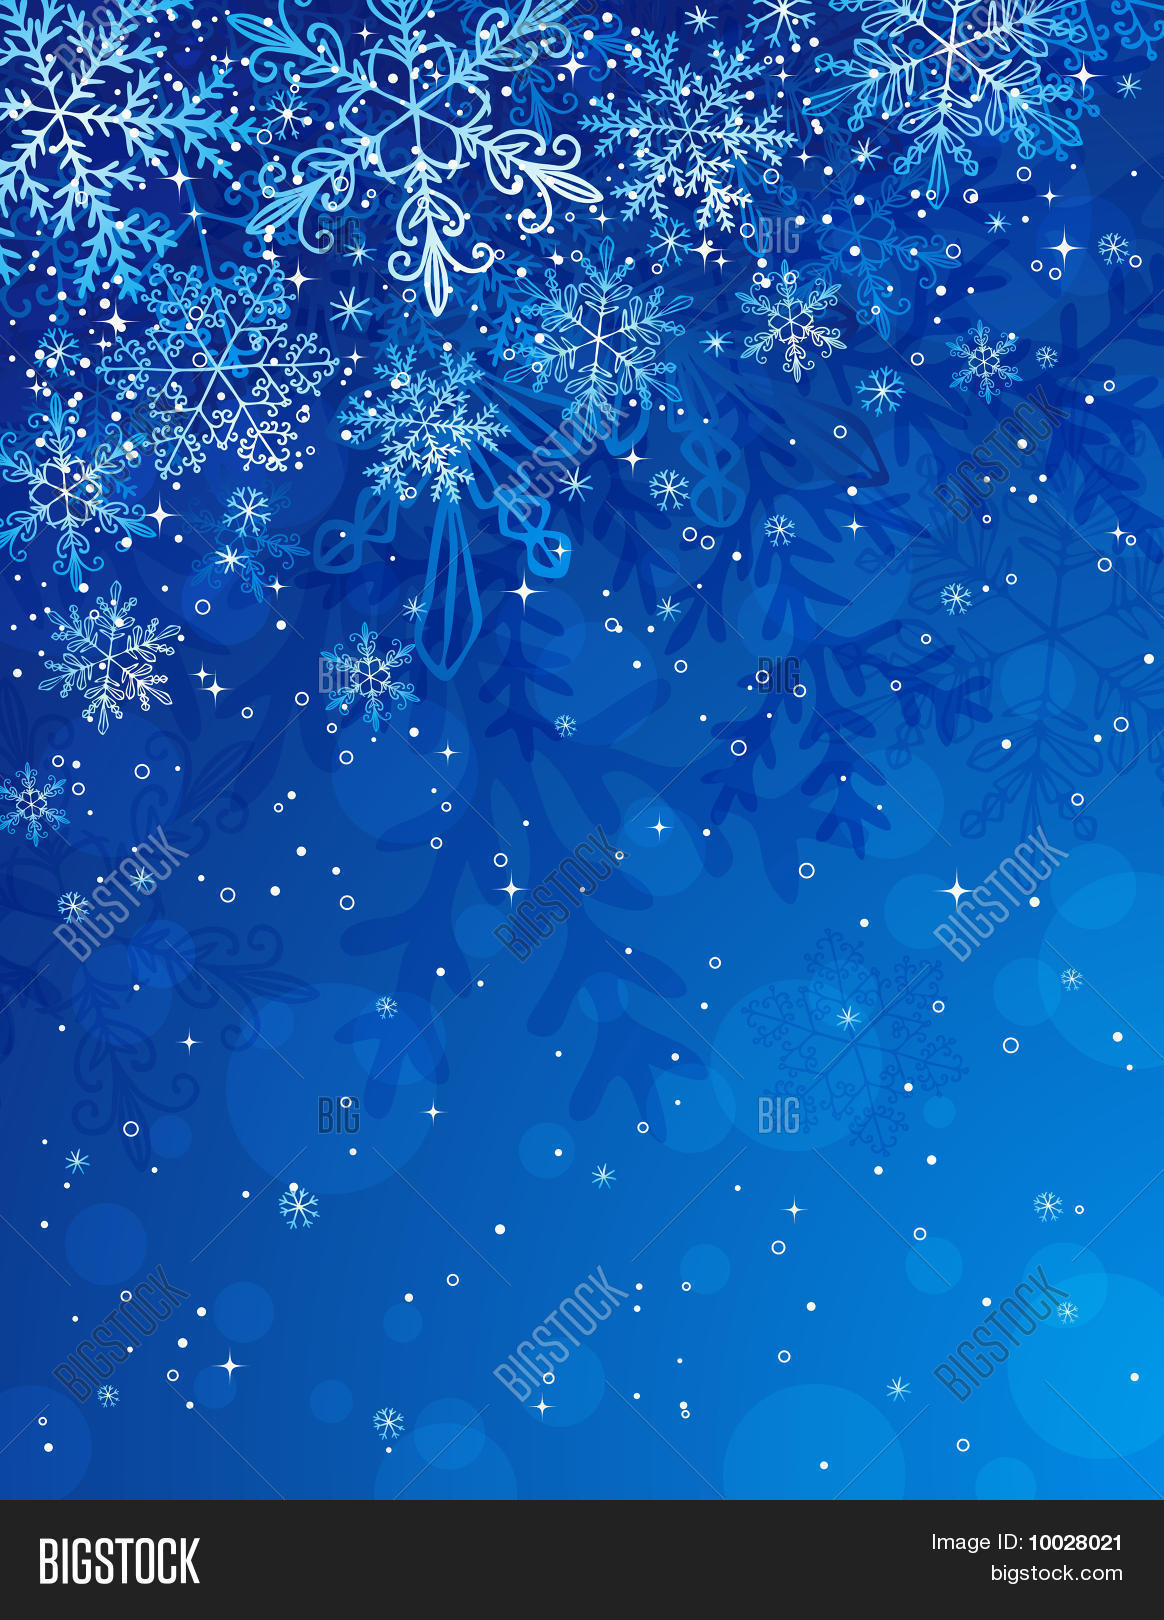 blue christmas vector photo free trial bigstock blue christmas vector photo free